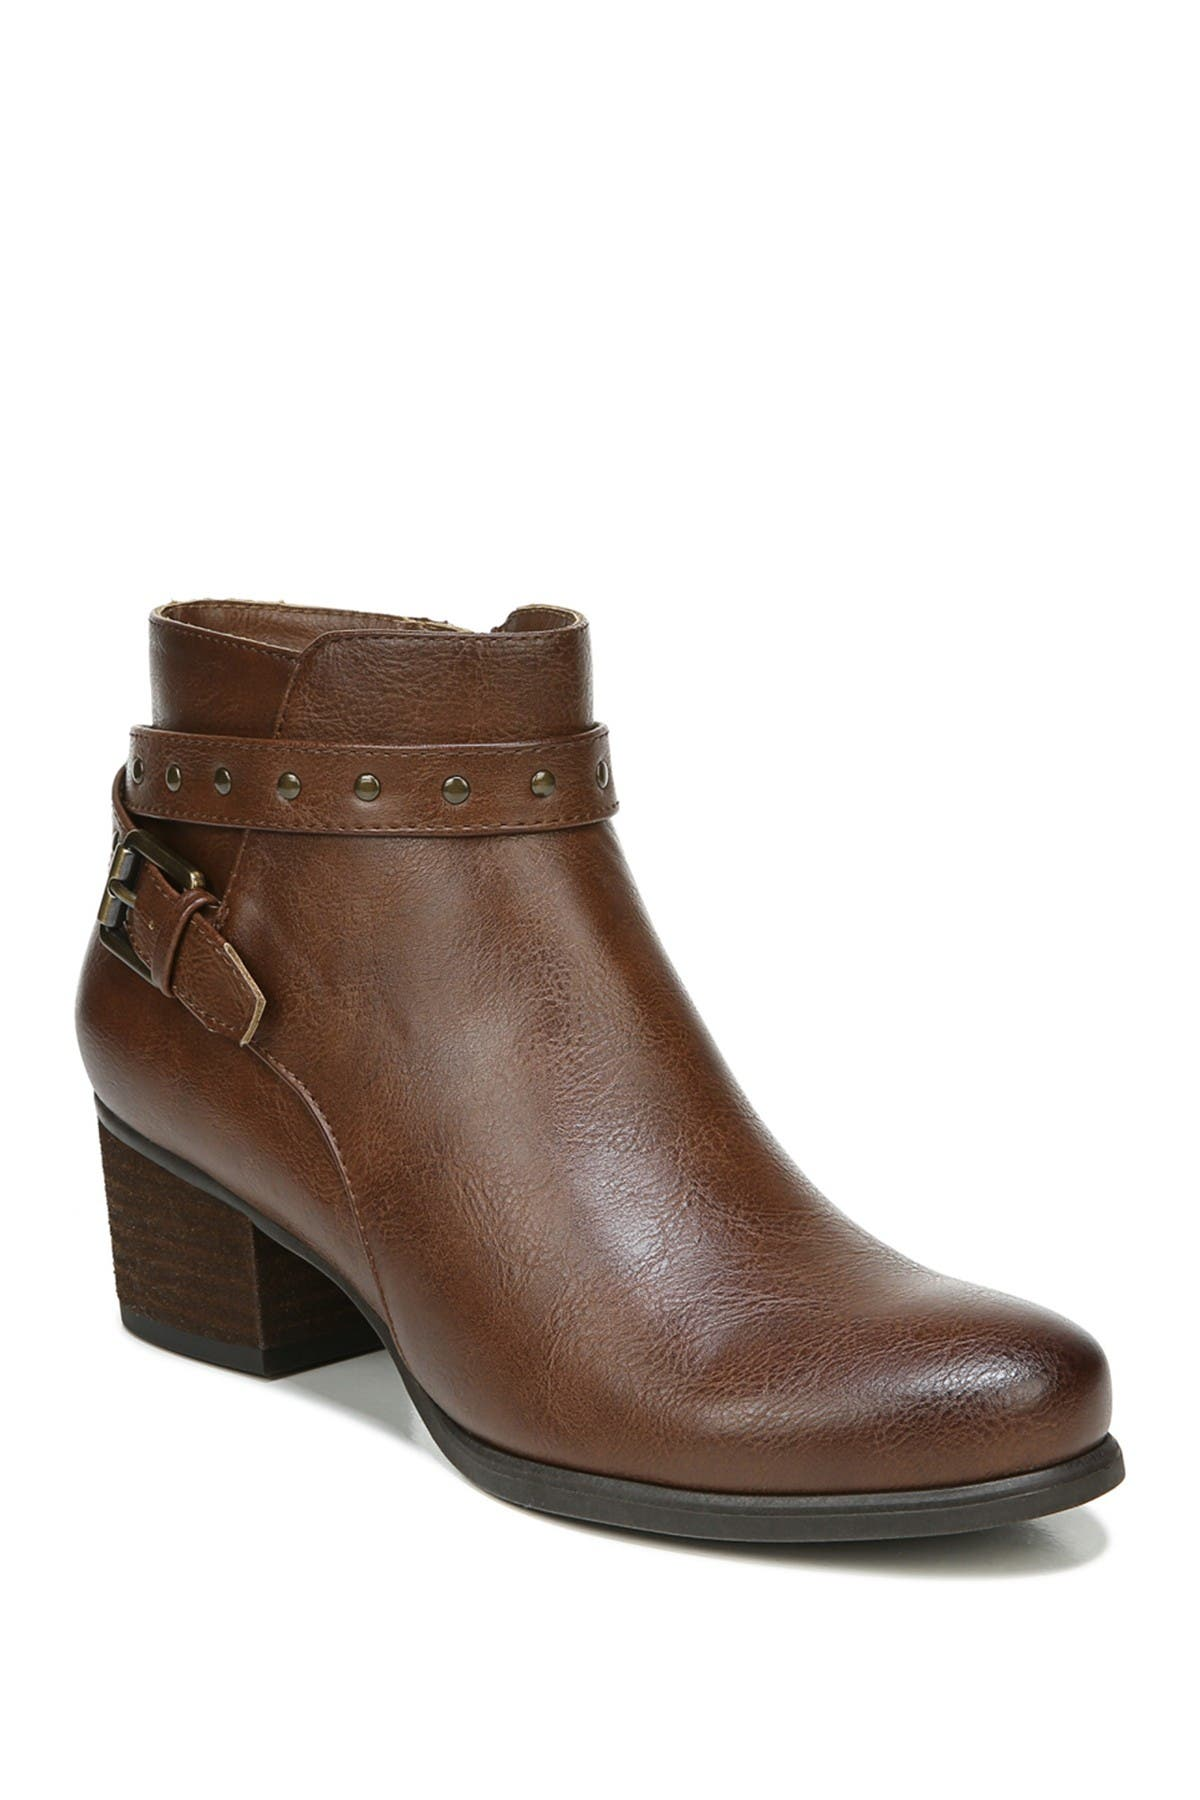 Image of SOUL Naturalizer Carrie Bootie - Wide Width Available